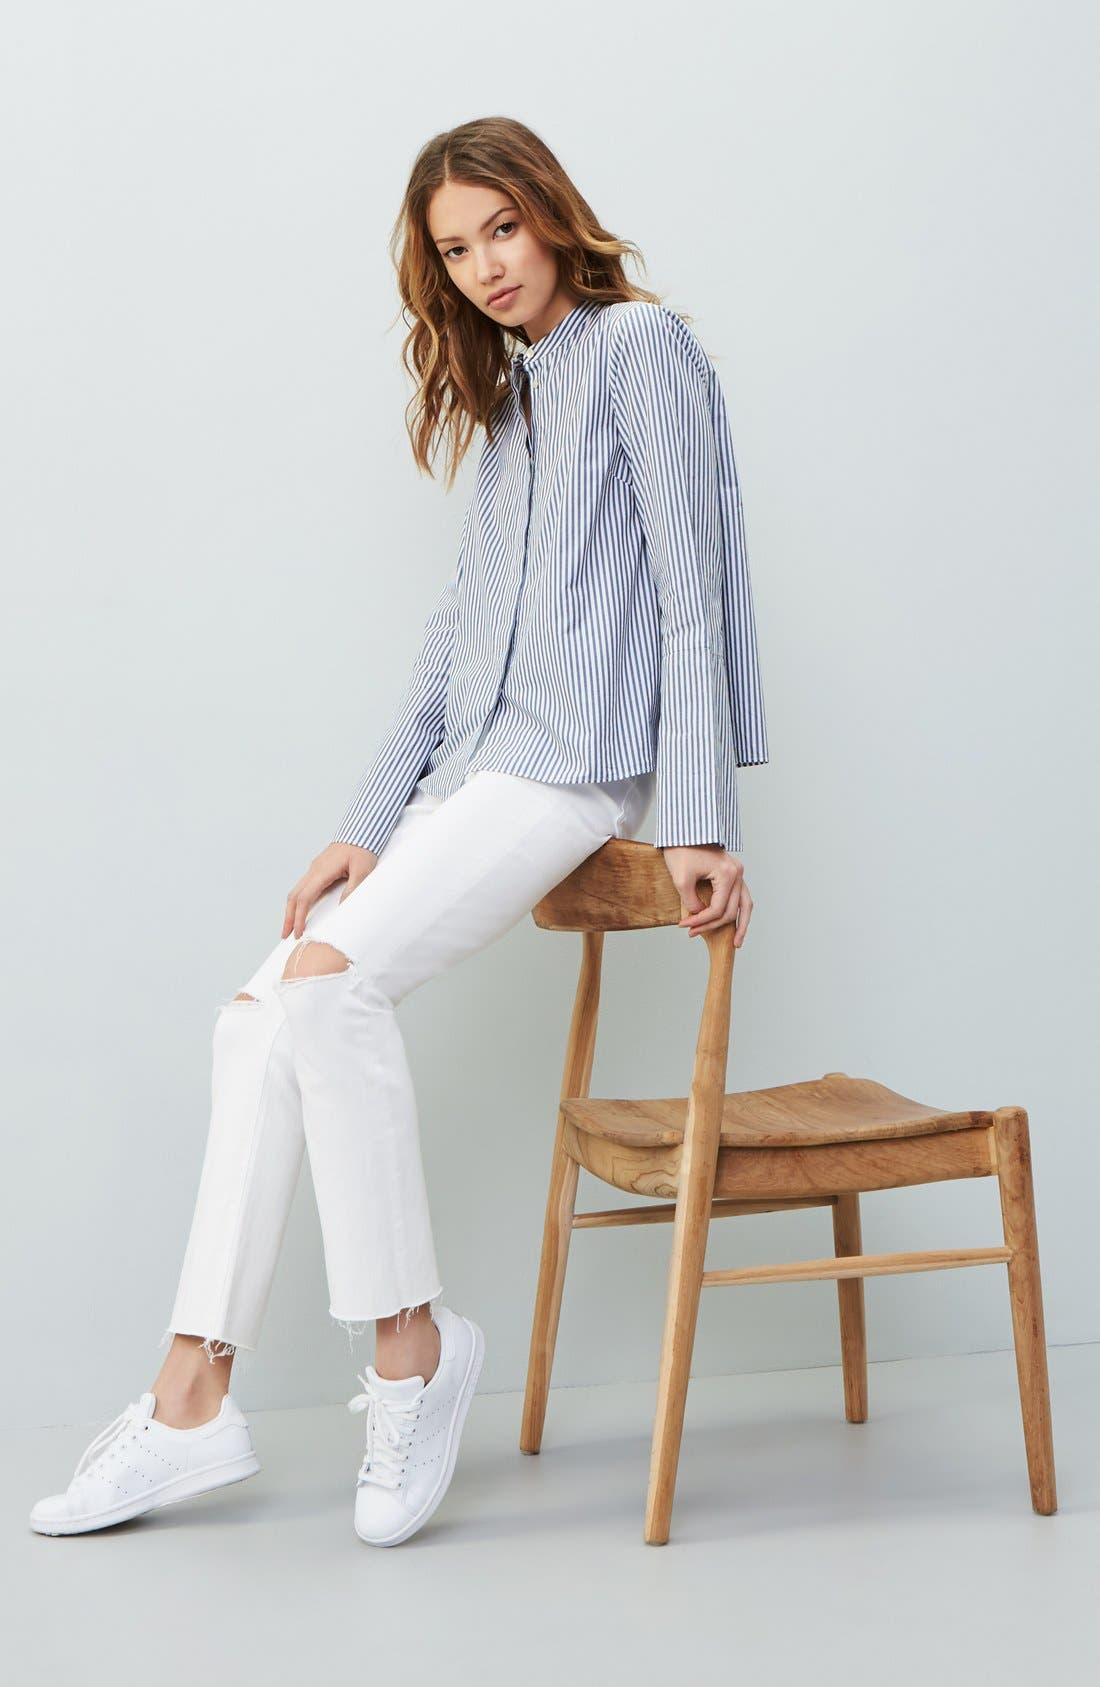 Madewell Blouse & Jeans Outfit with Accessories